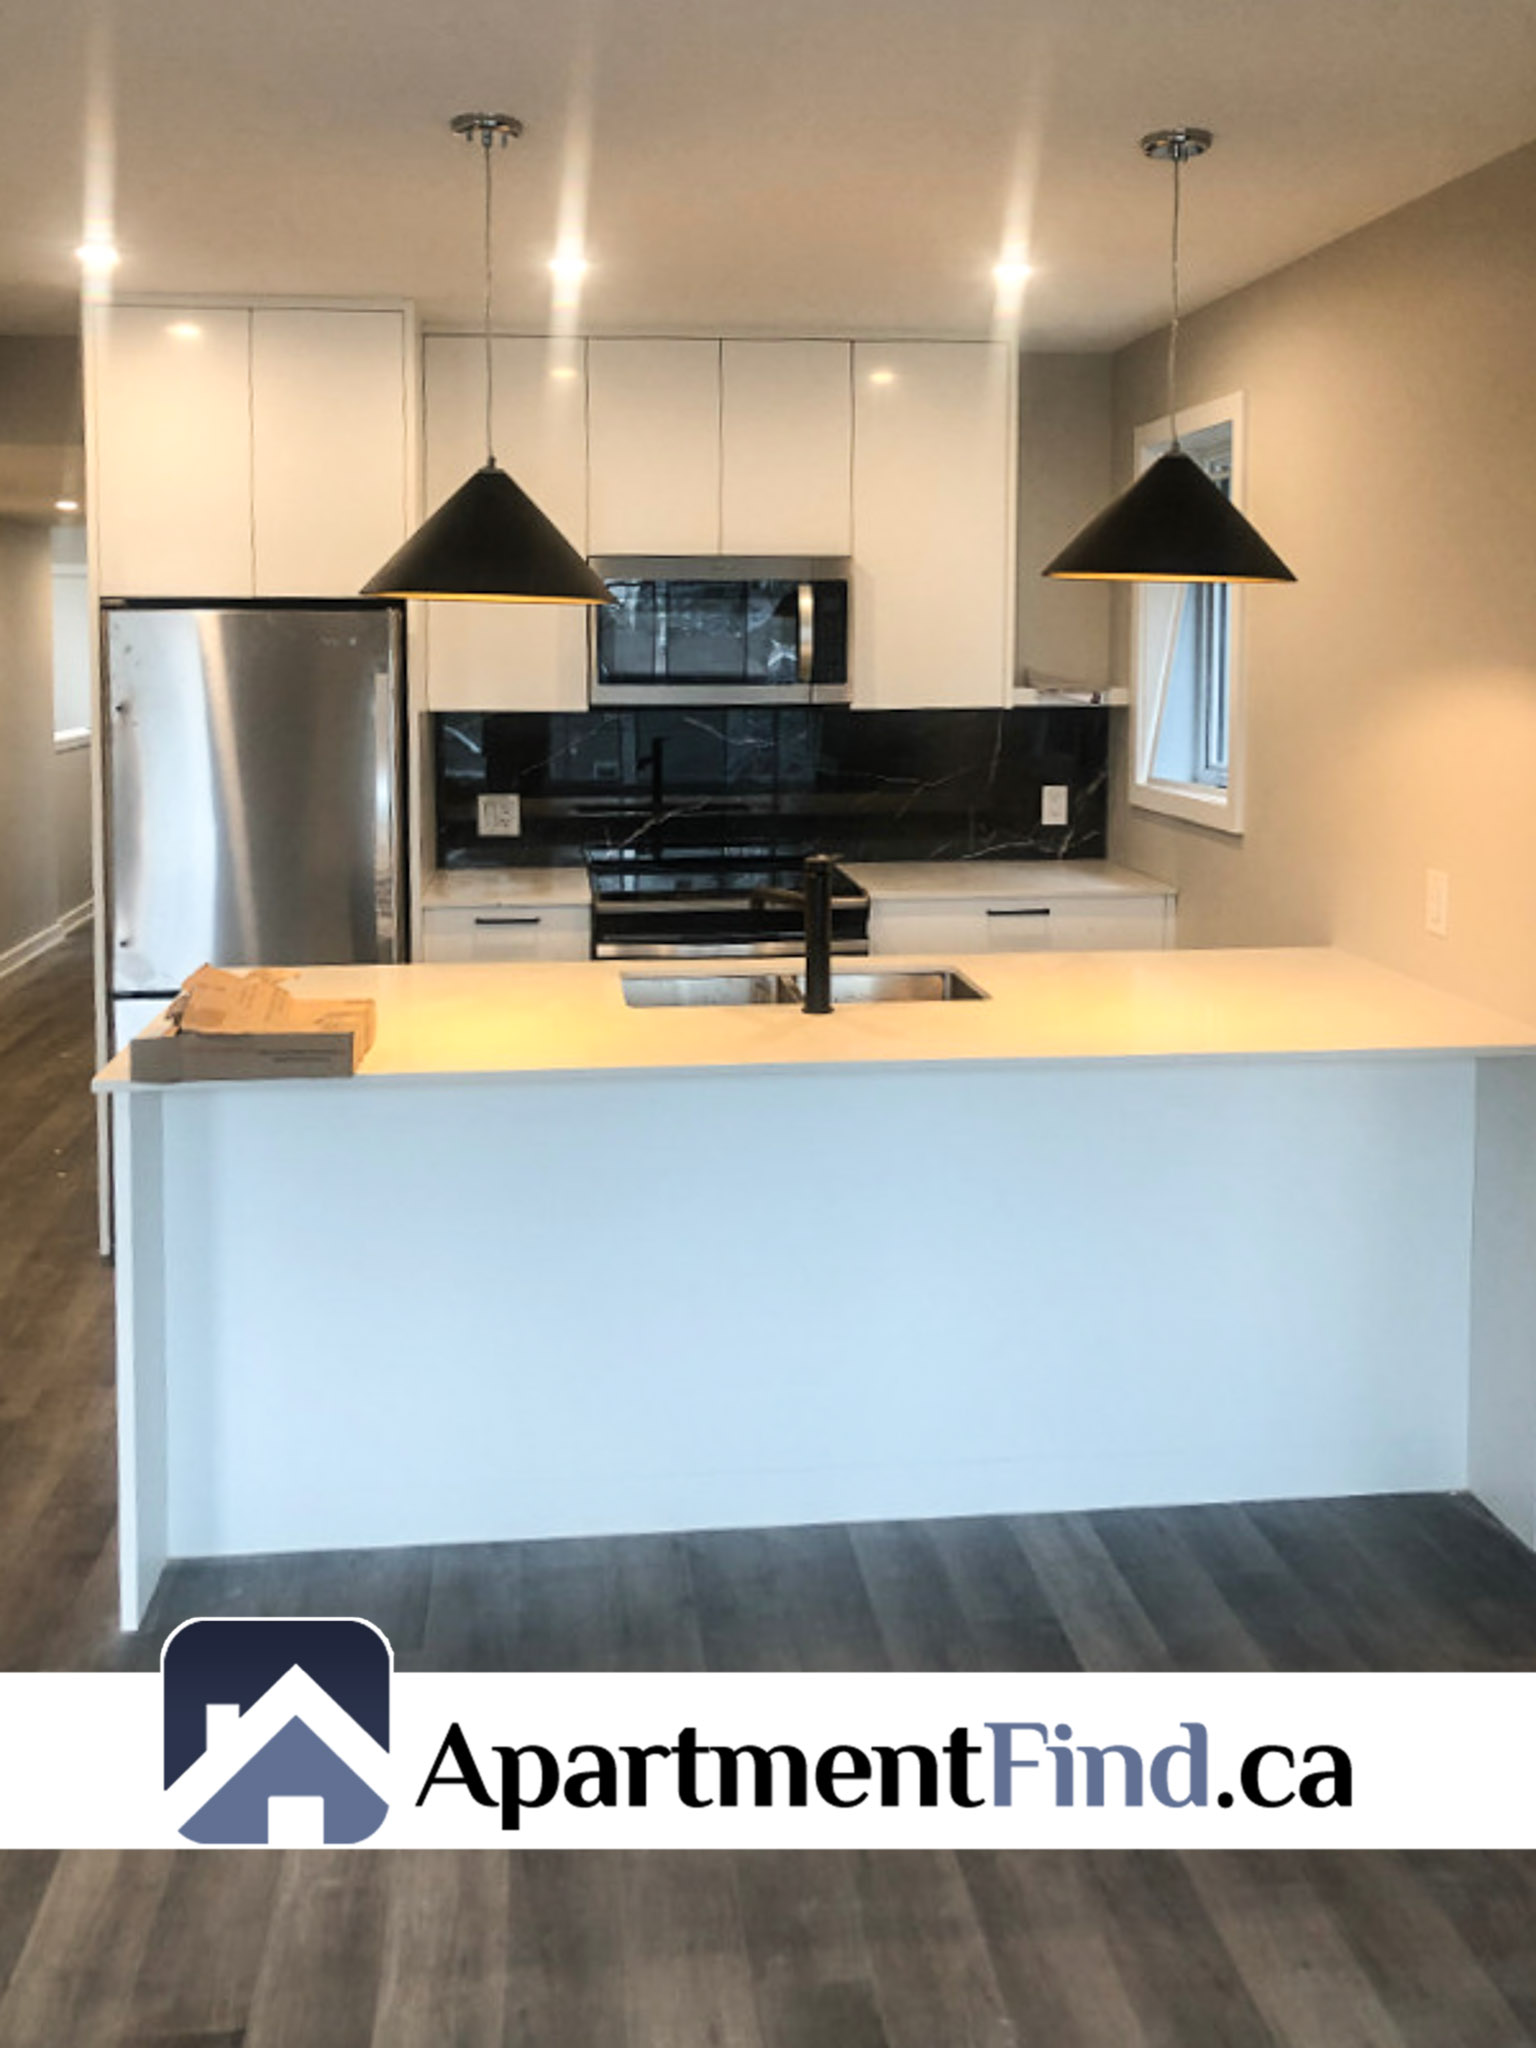 Brand new and luxury kitchen of this condo for rent in westboro